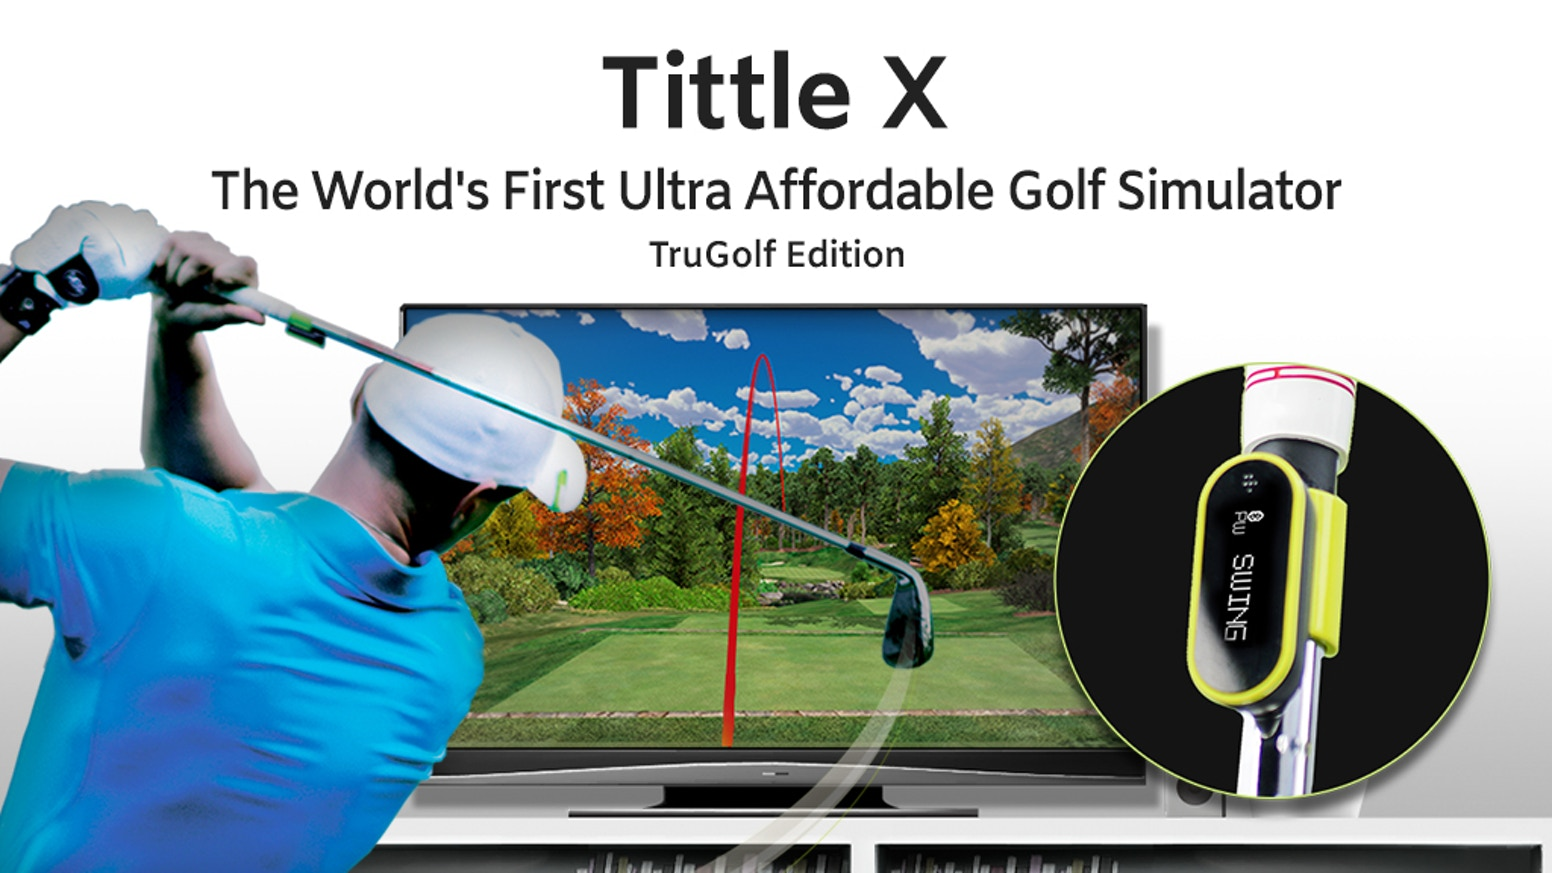 6f3651a3fa What if you can play golf anytime anywhere? Tittle X Golf Simulator TruGolf  Edition makes